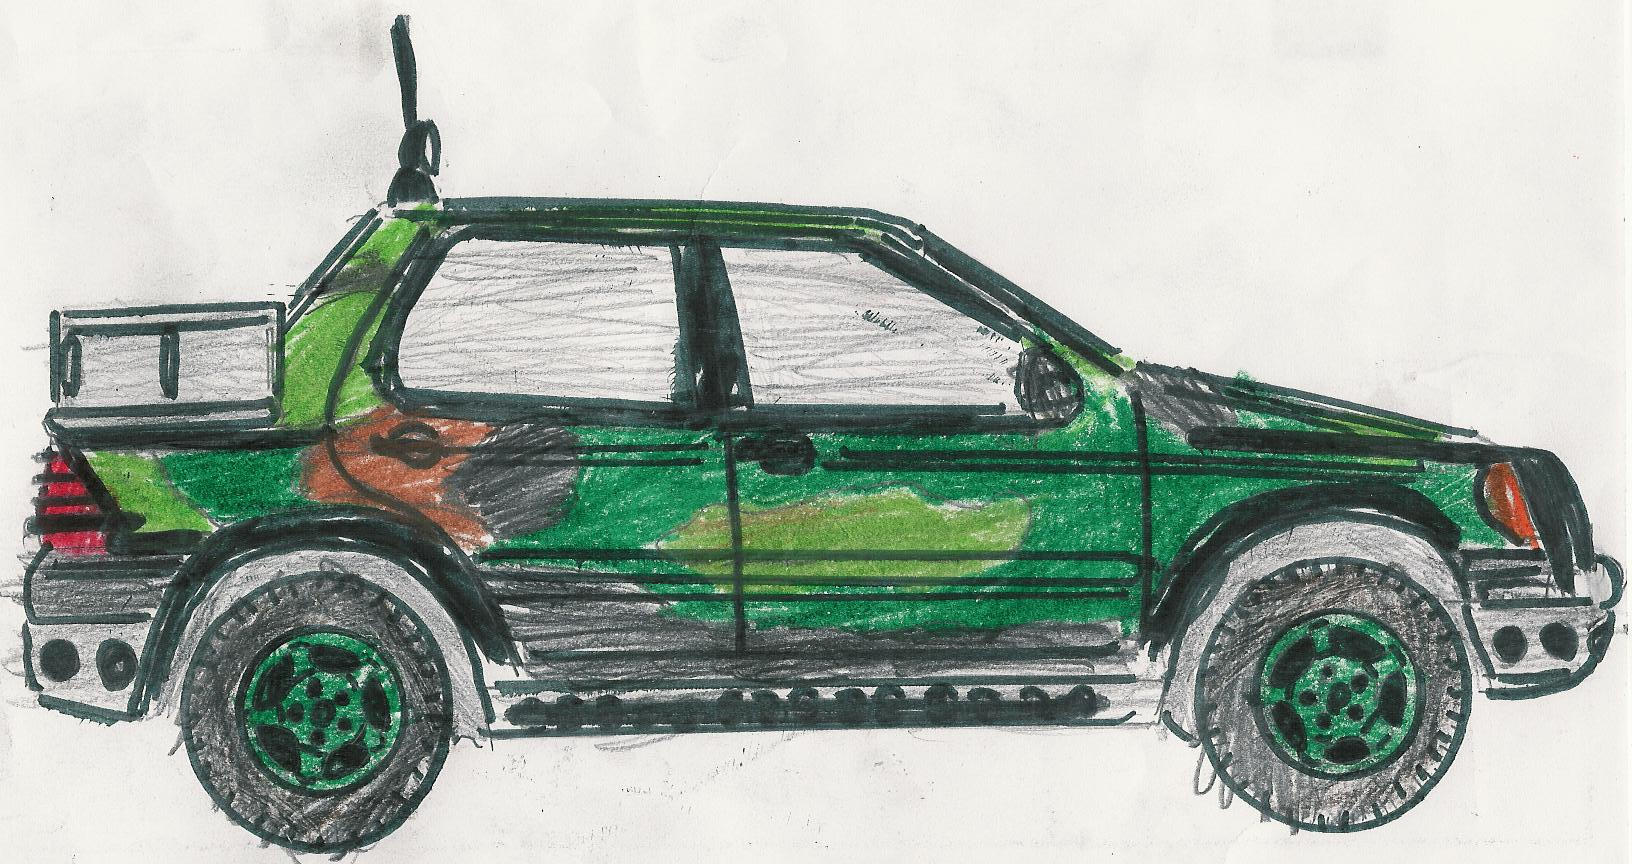 Jurassic Park Mercedes 2 by carfan on DeviantArt